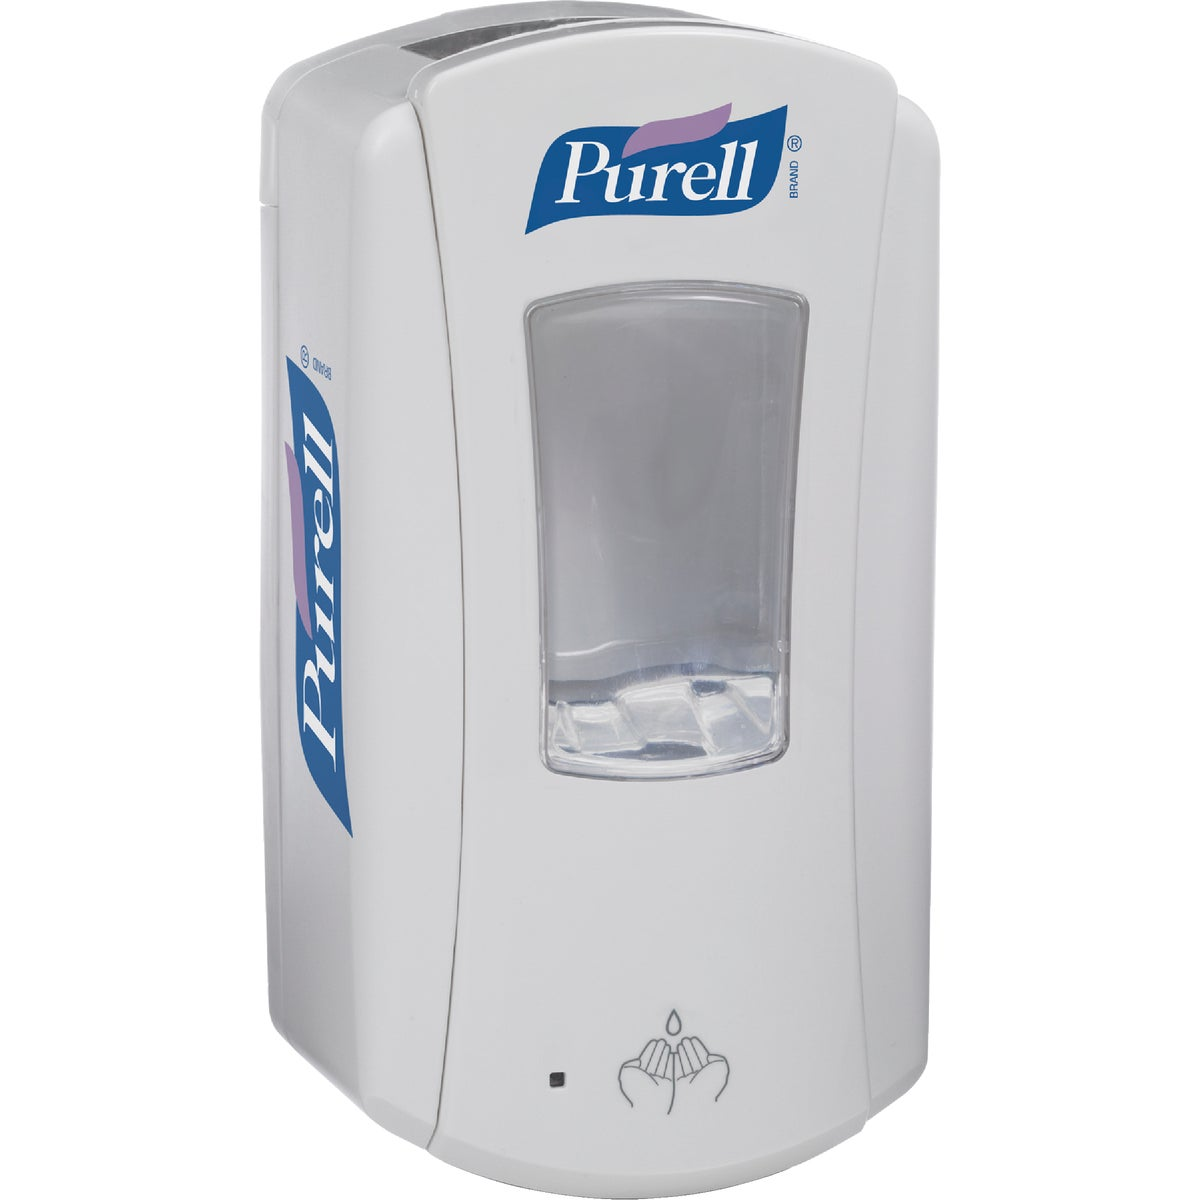 PURELL LTX12 DISPENSER - 1920-04 by Bunzl USA